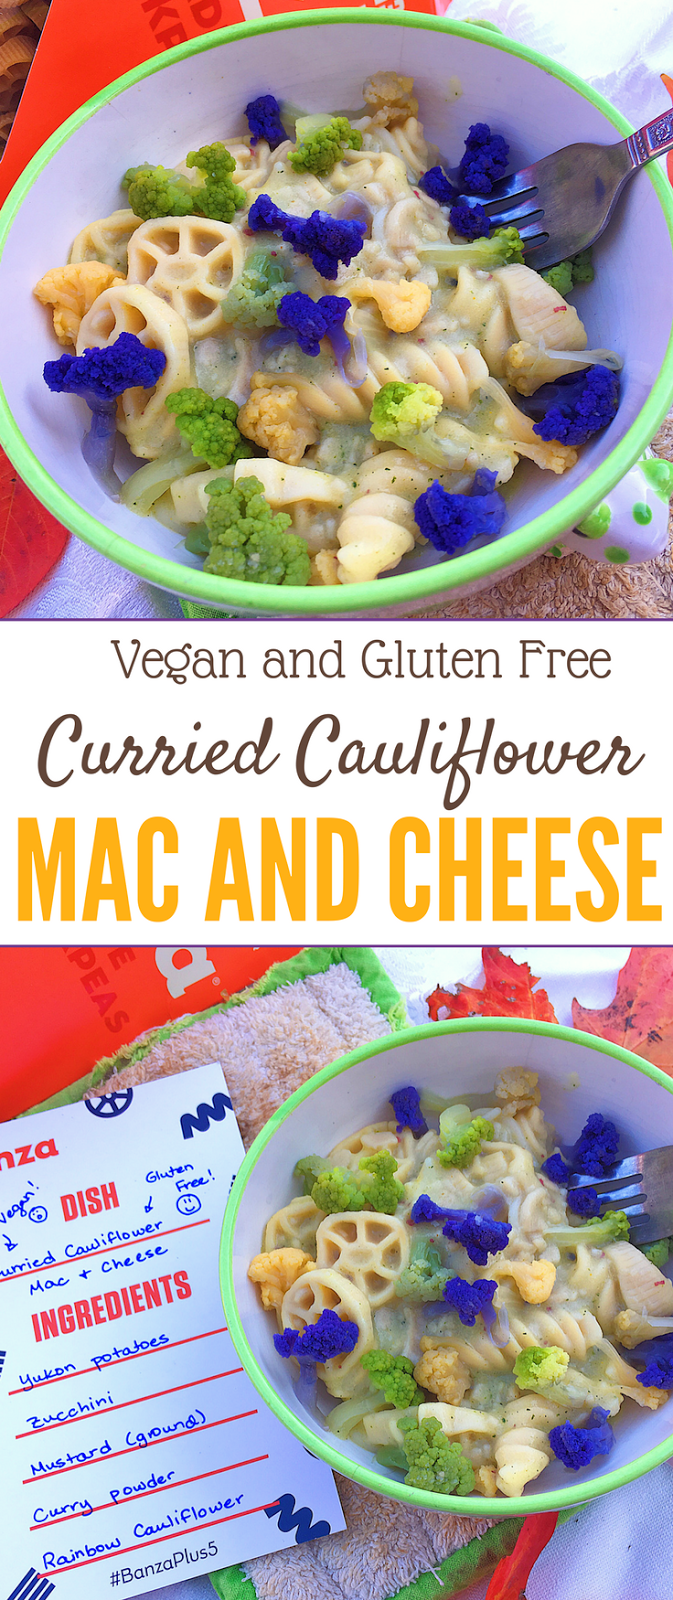 Curried Cauliflower Vegan Mac and Cheese (Gluten Free)